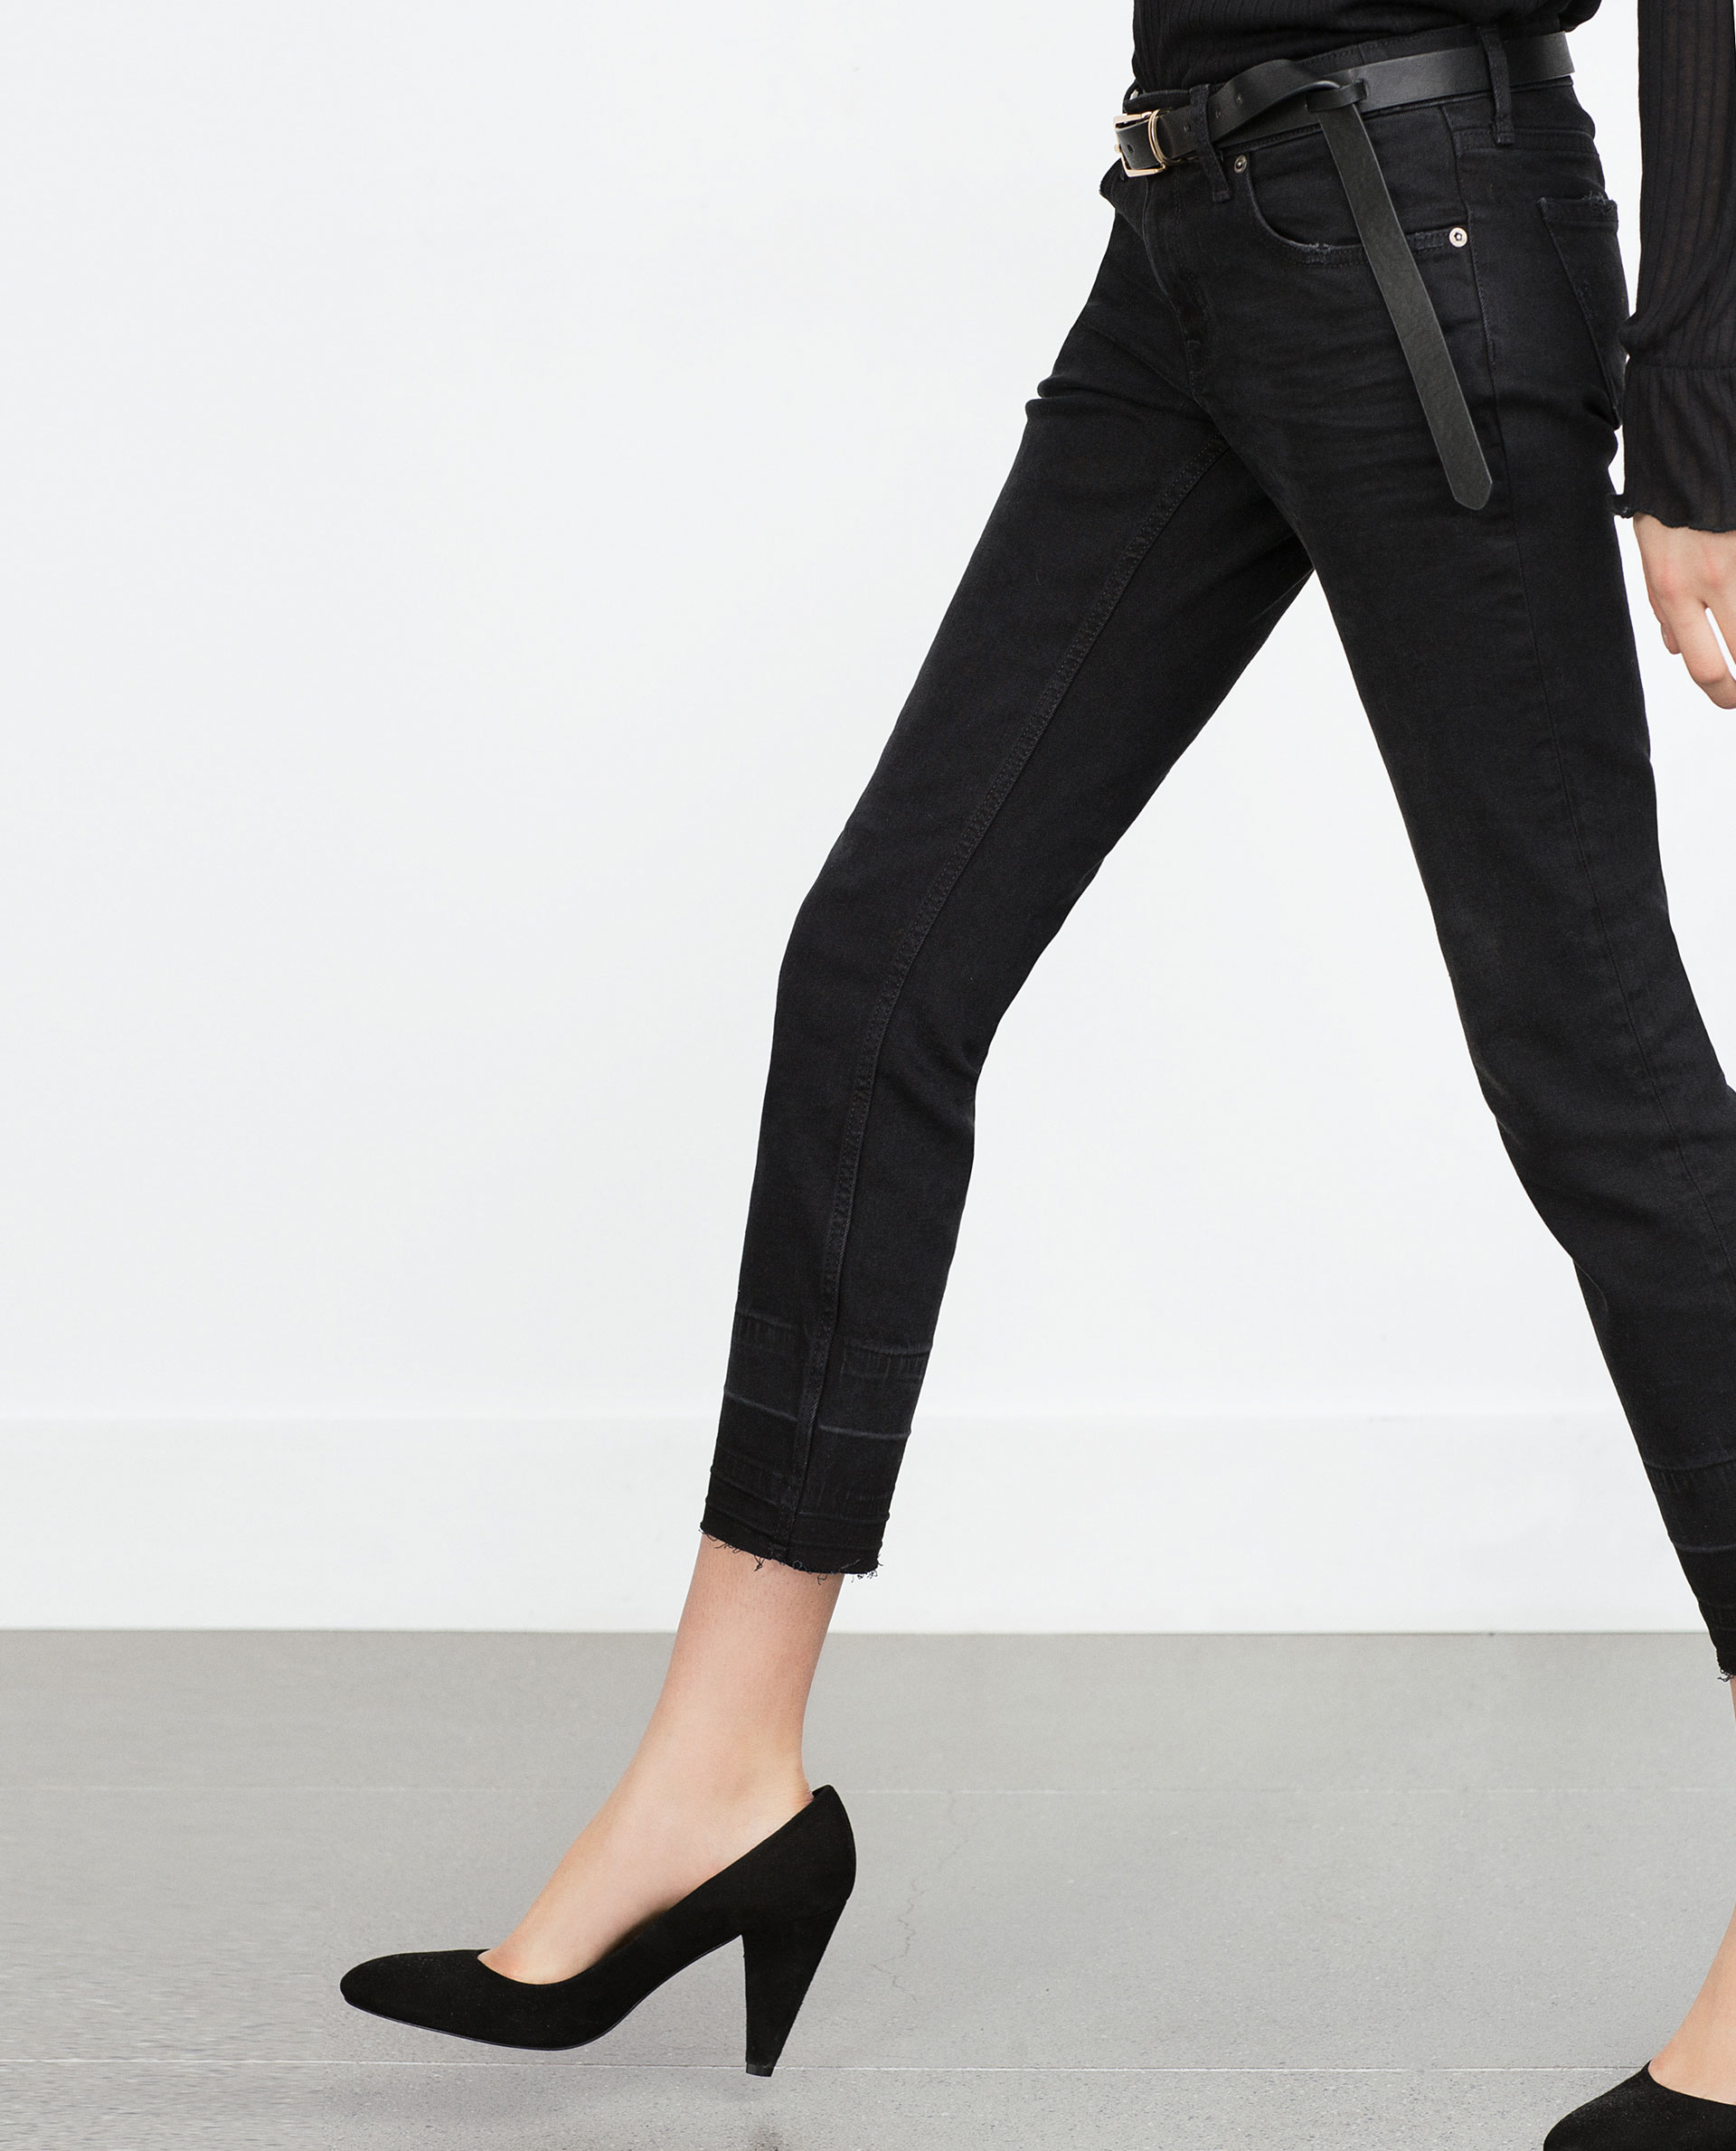 AG Jeans, the leader in premium designer denim for women, offers skinny, straight, boyfriend, cropped, cigarette, flare and bootcut jeans that comprise the modern woman's wardrobe. Build the foundation of your denim collection with our signature skinny jeans, The Legging or the high-rise Farrah Skinny.